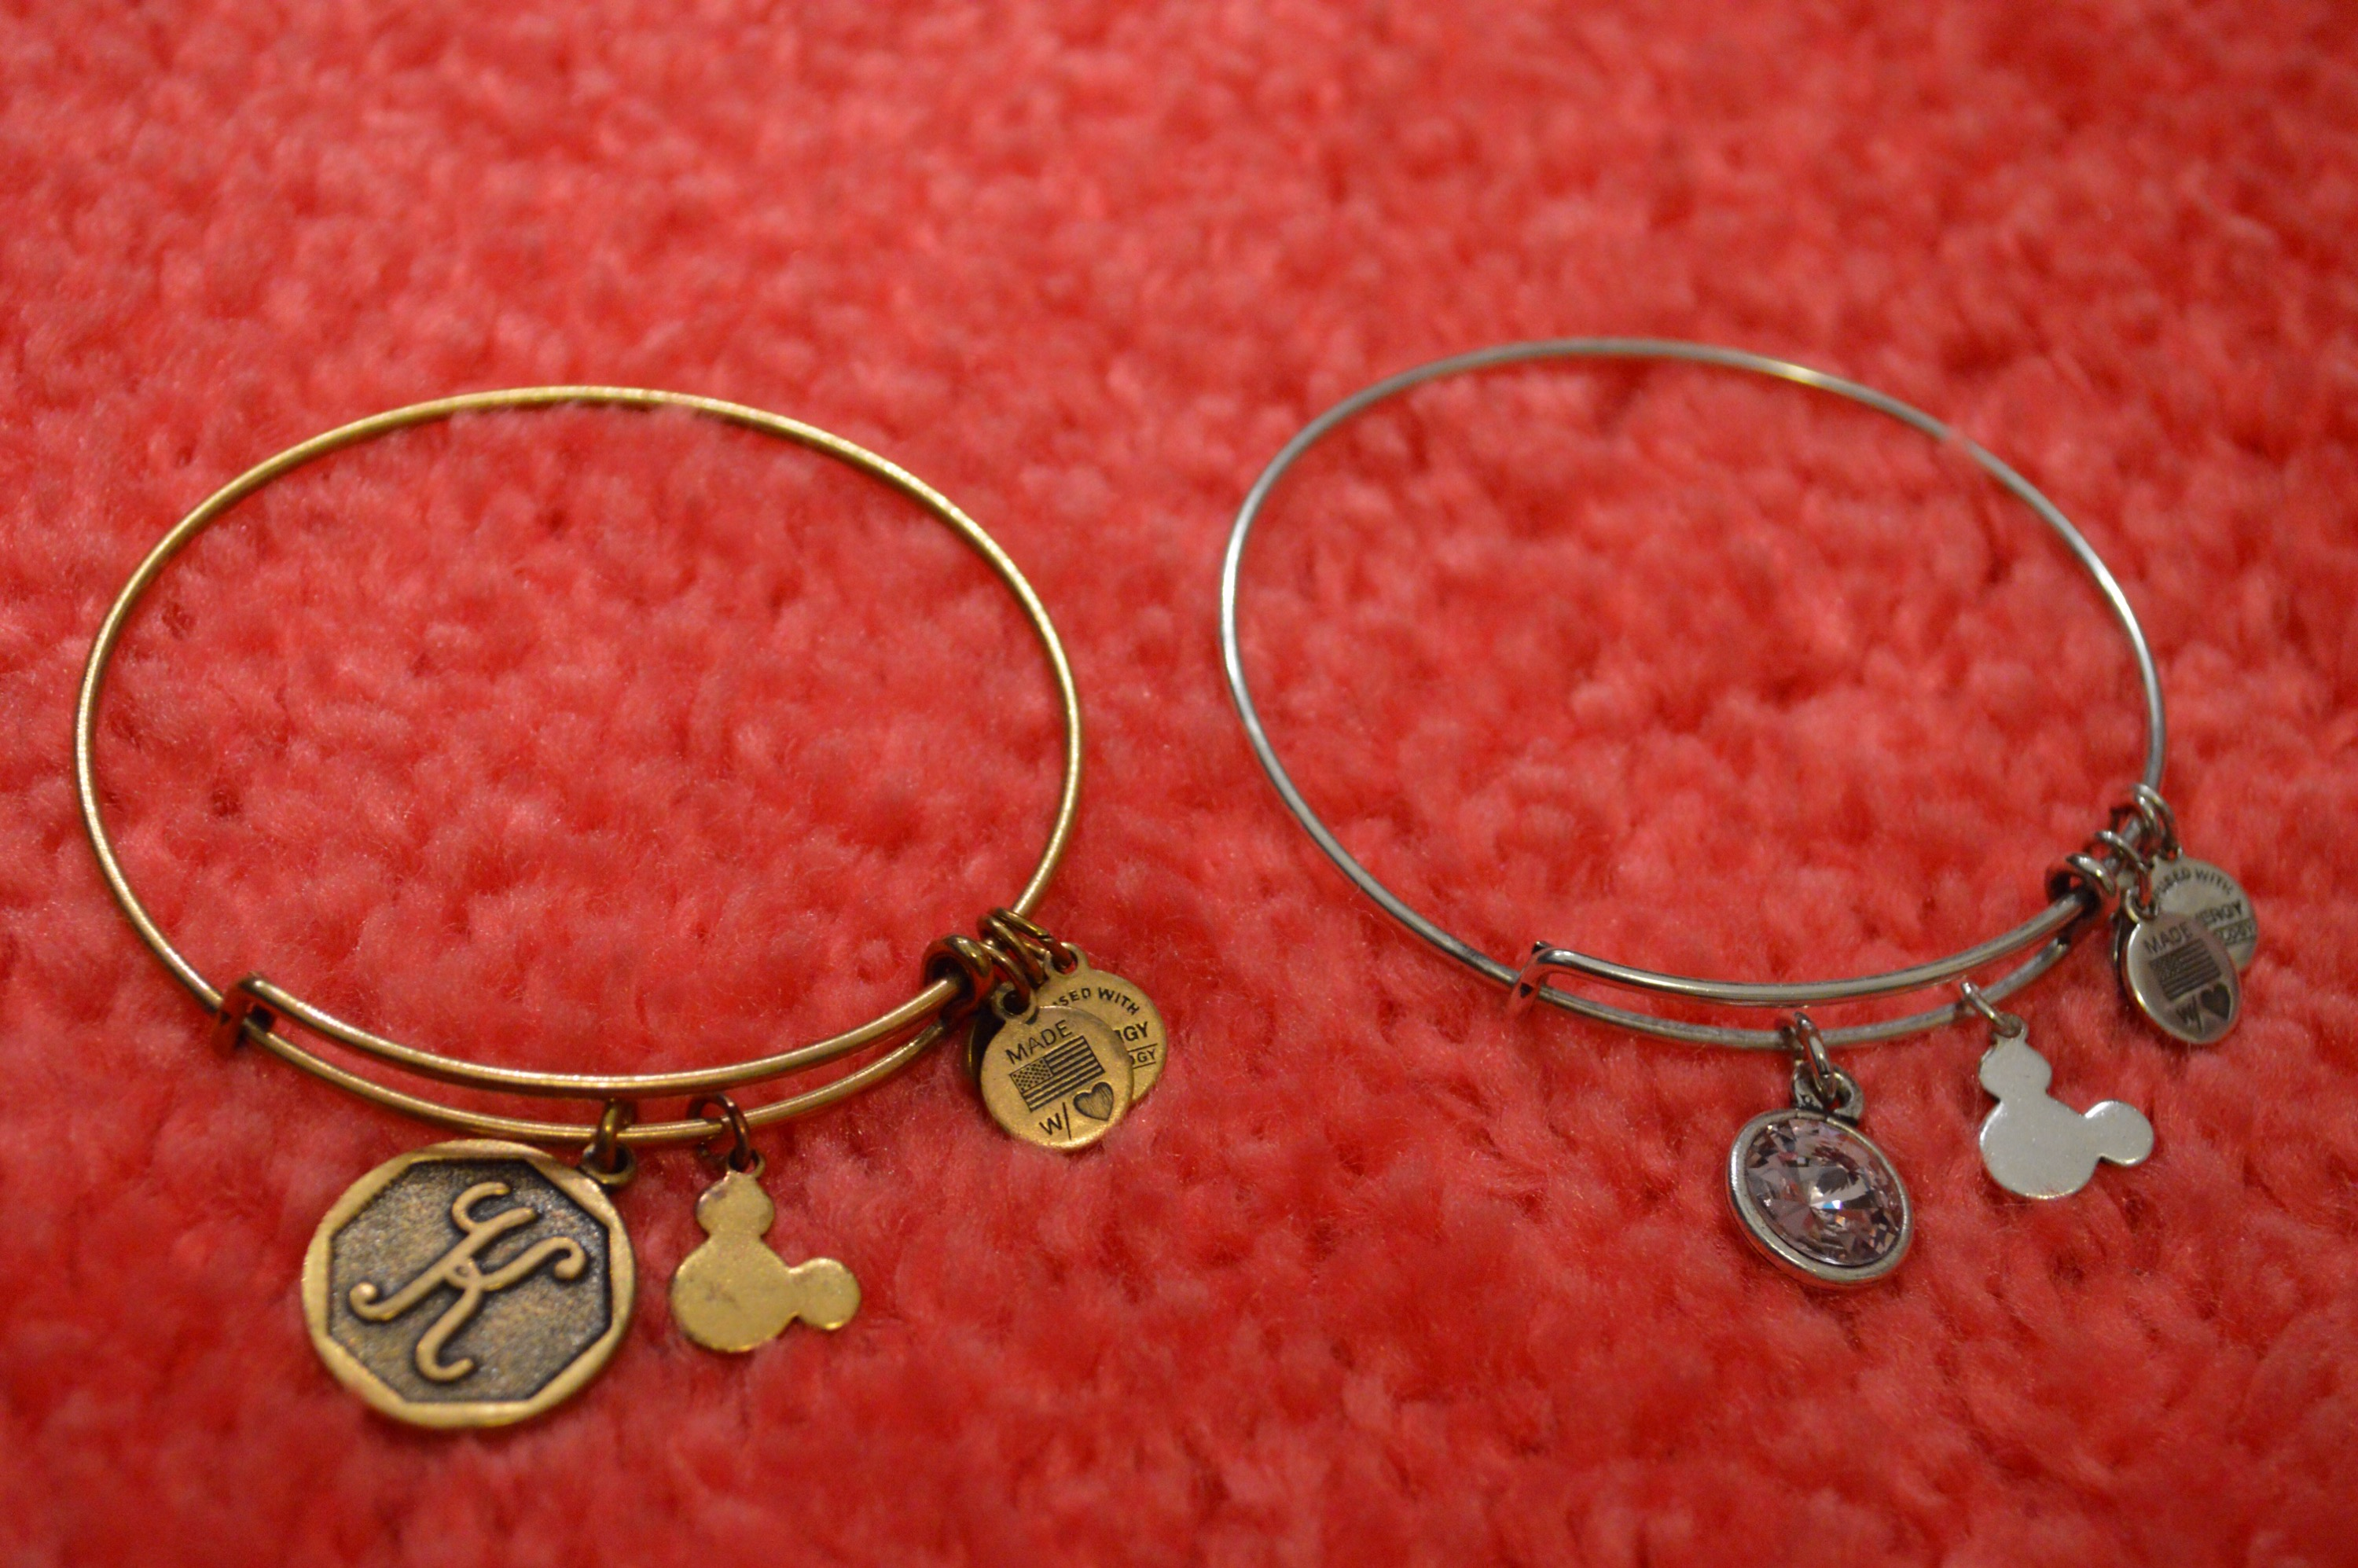 52dcdf318 Both of those also sport a Mickey Mouse charm. I have a Mickey filigree  bracelet that is pretty and elegant. Definitely a subtle way of showing  your Disney ...